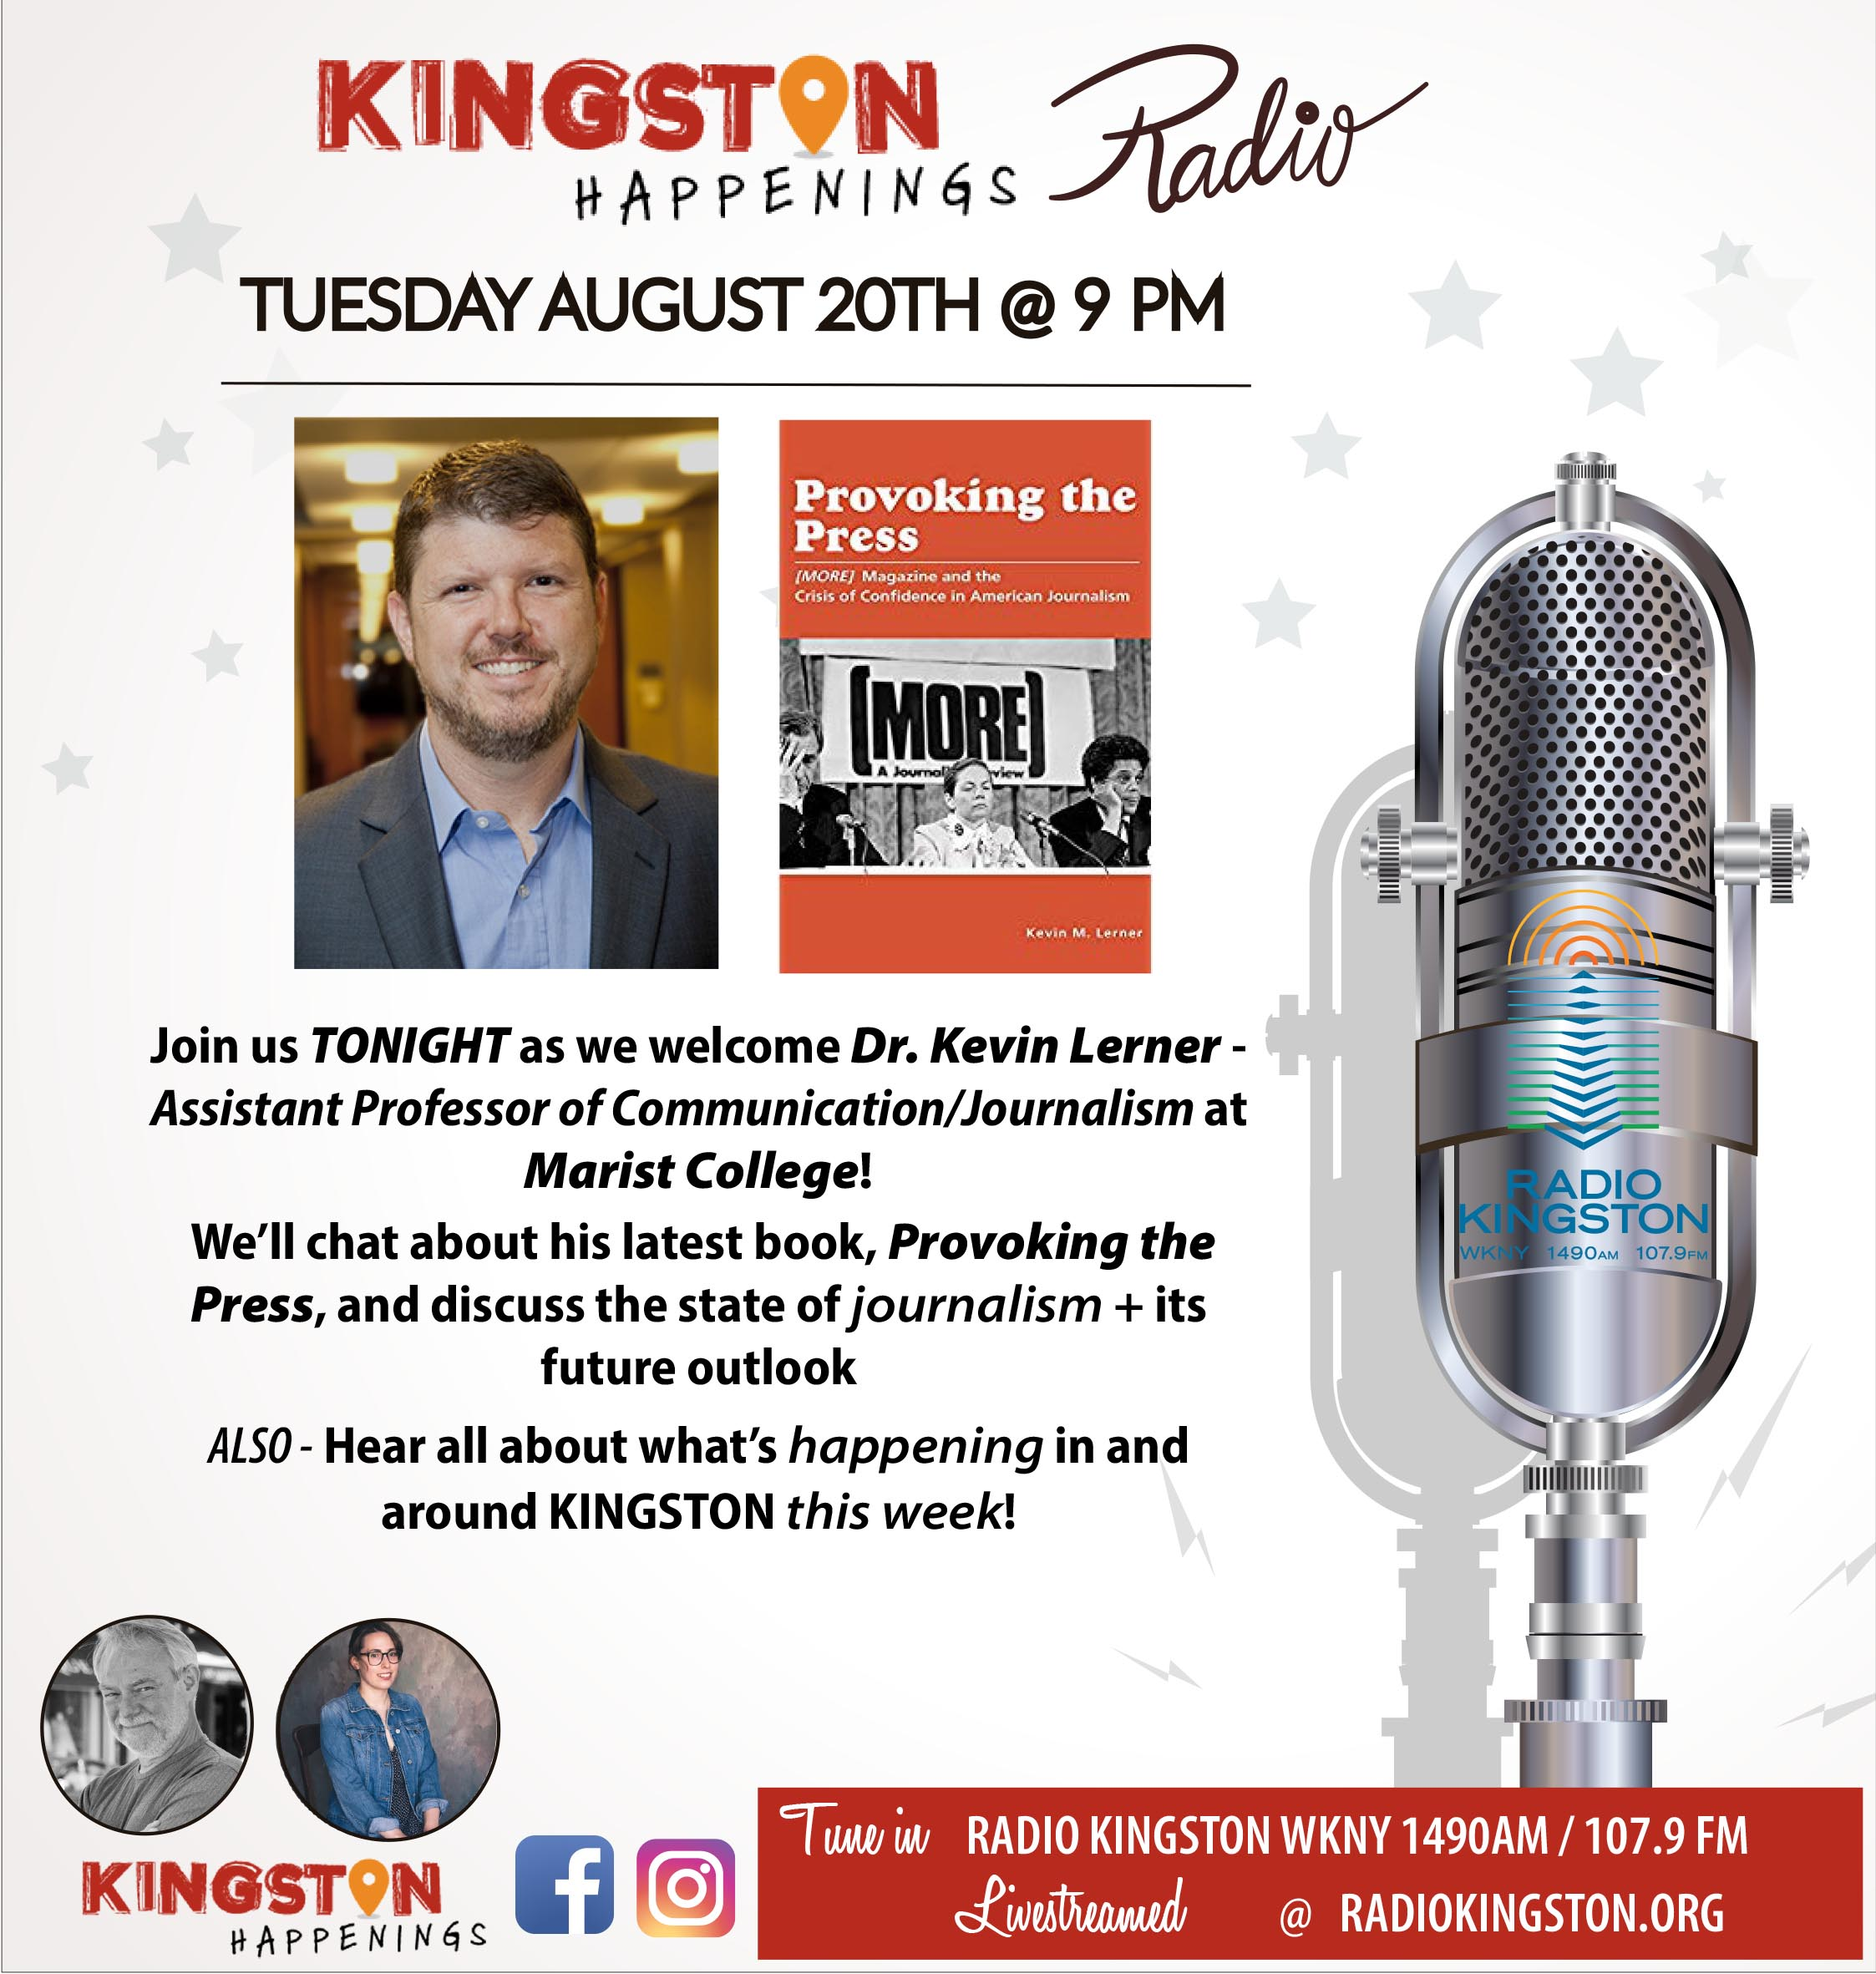 Listen to Kevin Lerner discuss  Provoking the Press  and the state of journalism on the Kingston Happenings radio show on Radio Kingston, August 20, 2019. Available now to stream anytime from their website:  https://radiokingston.org/en/broadcast/kingston-happenings/episodes/provoking-the-press-with-dr-kevin-lerner